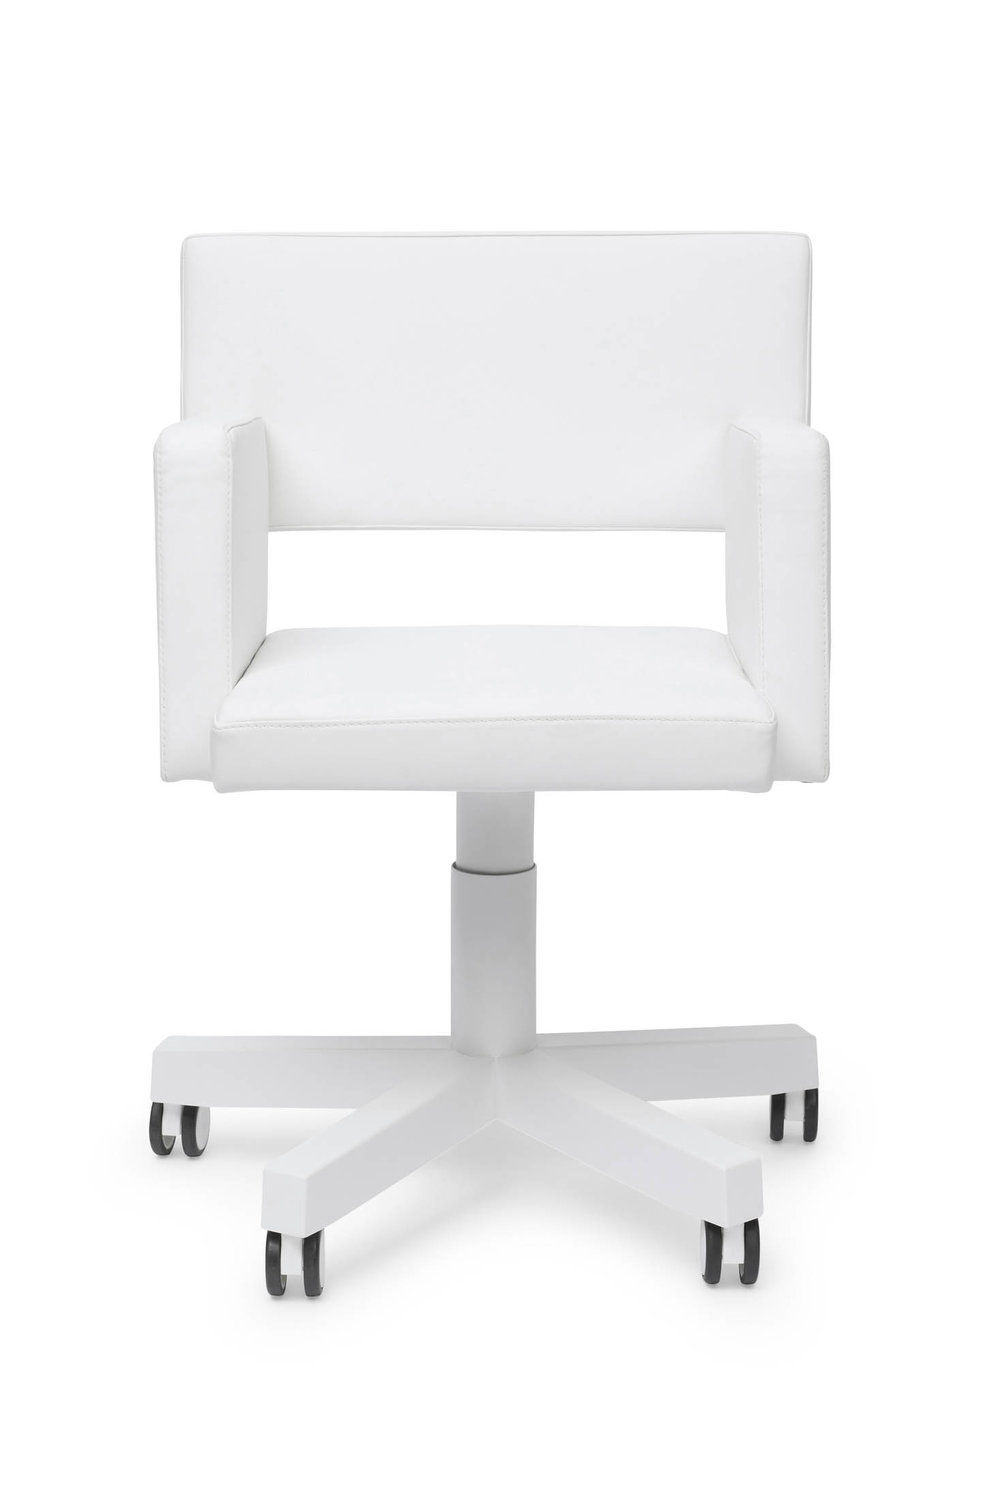 connect-white-leather-upholstered-front.jpg